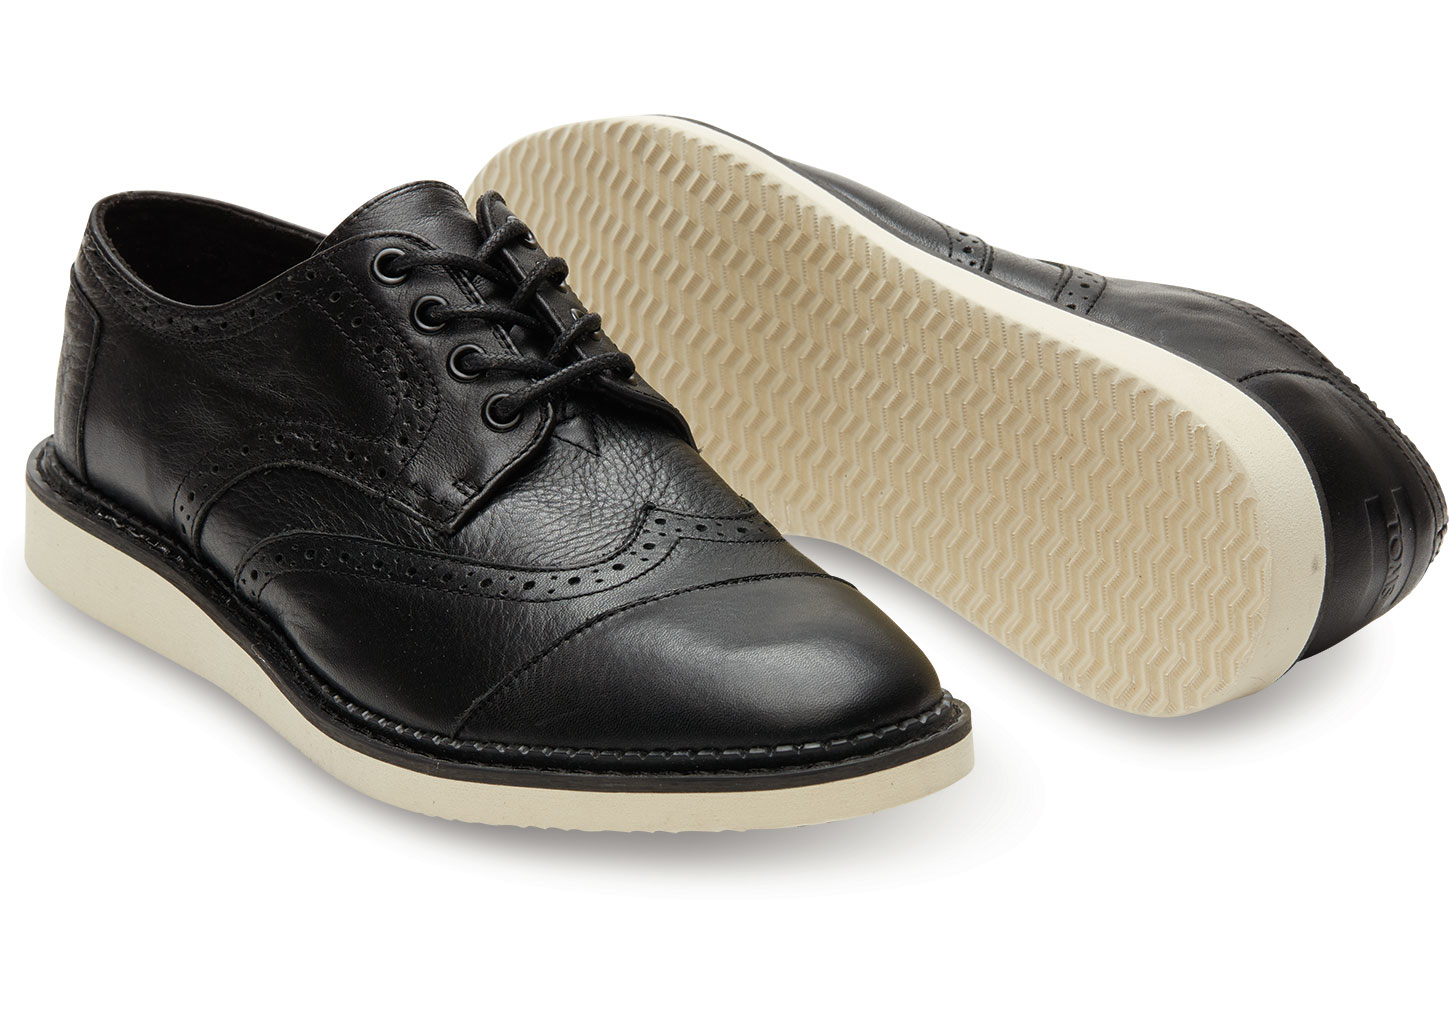 Mens Shoes With Pearls In Them